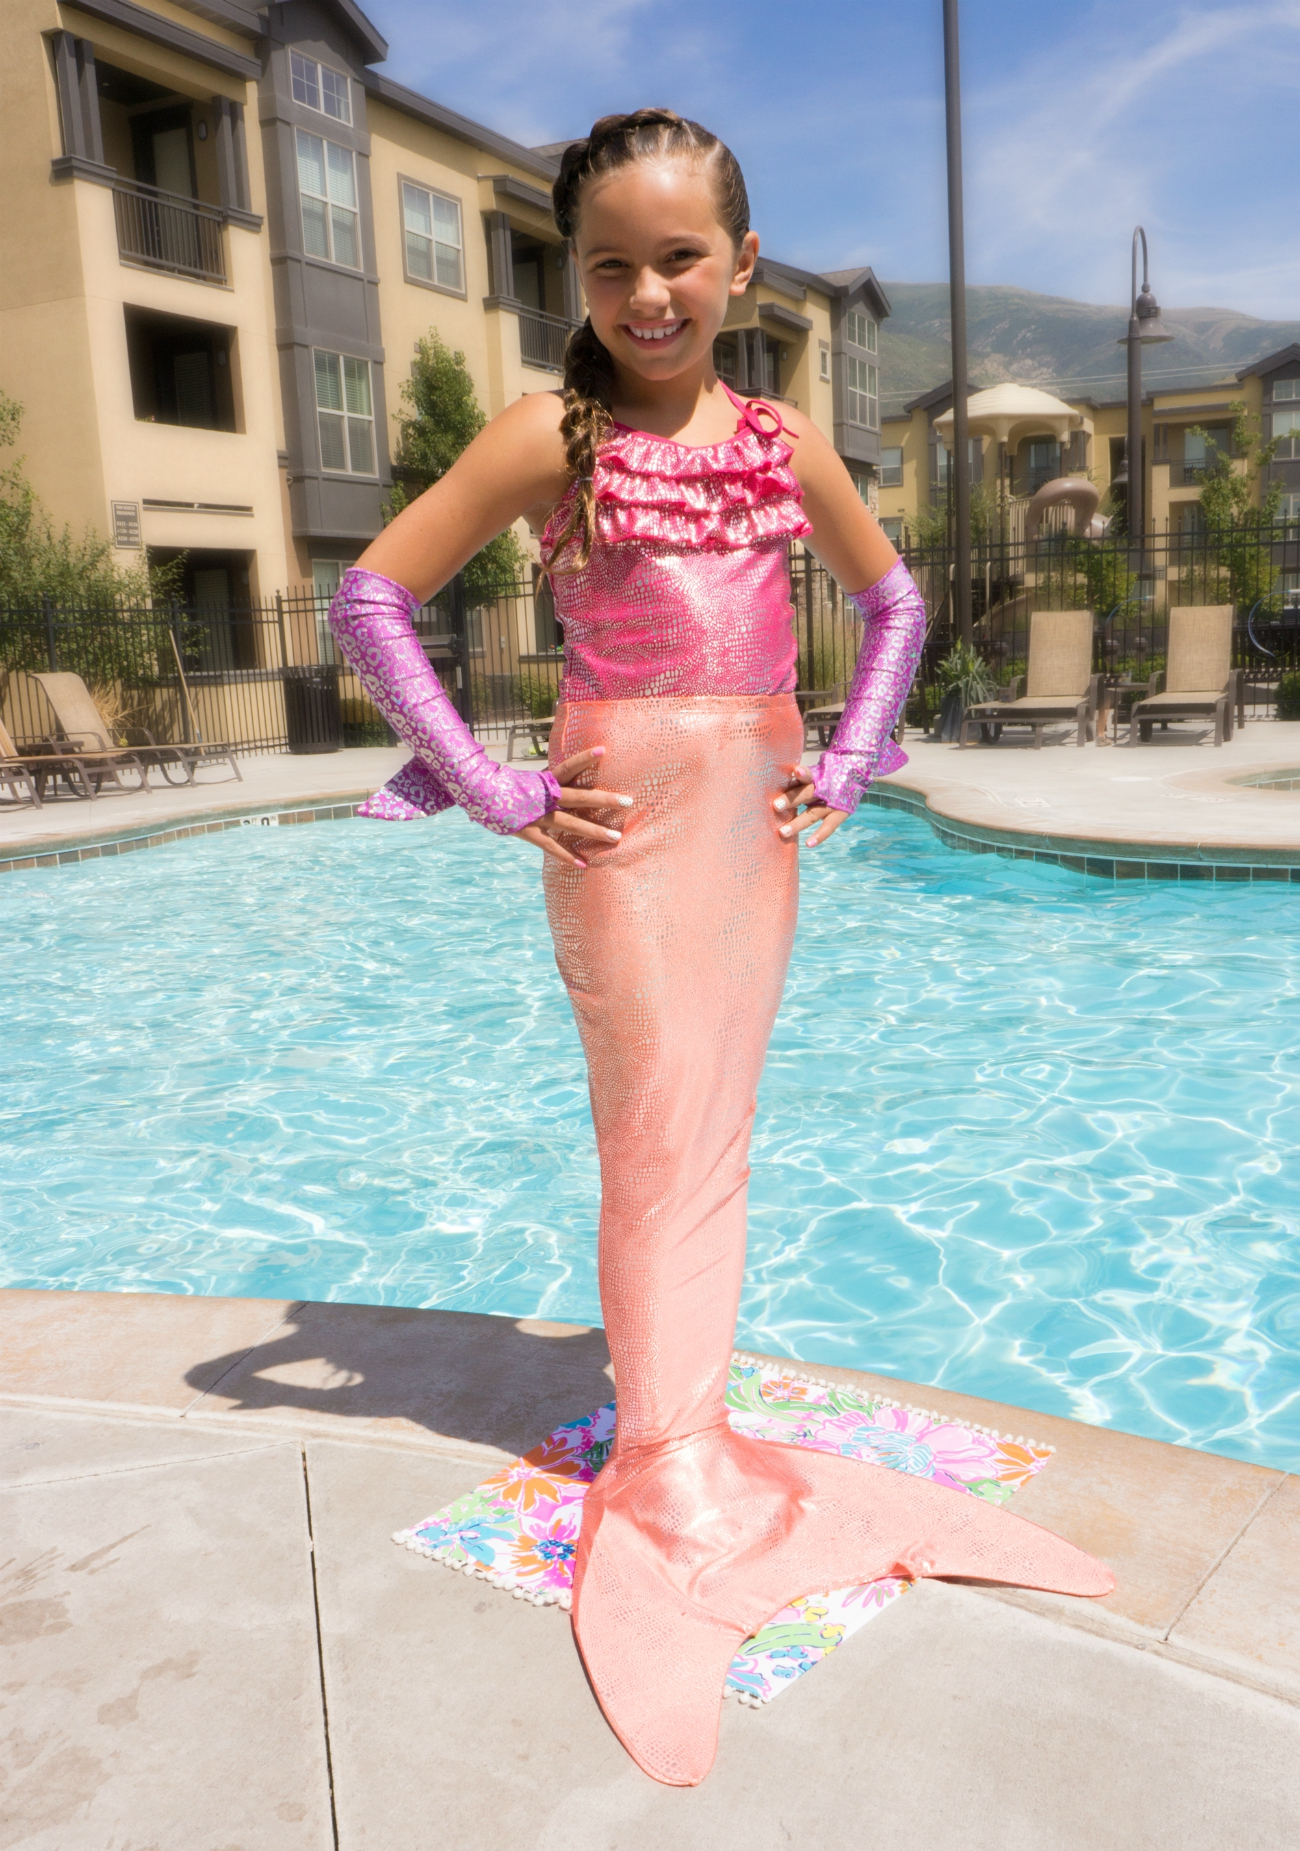 Coral Shimmer Tail Mermaid with purple fins